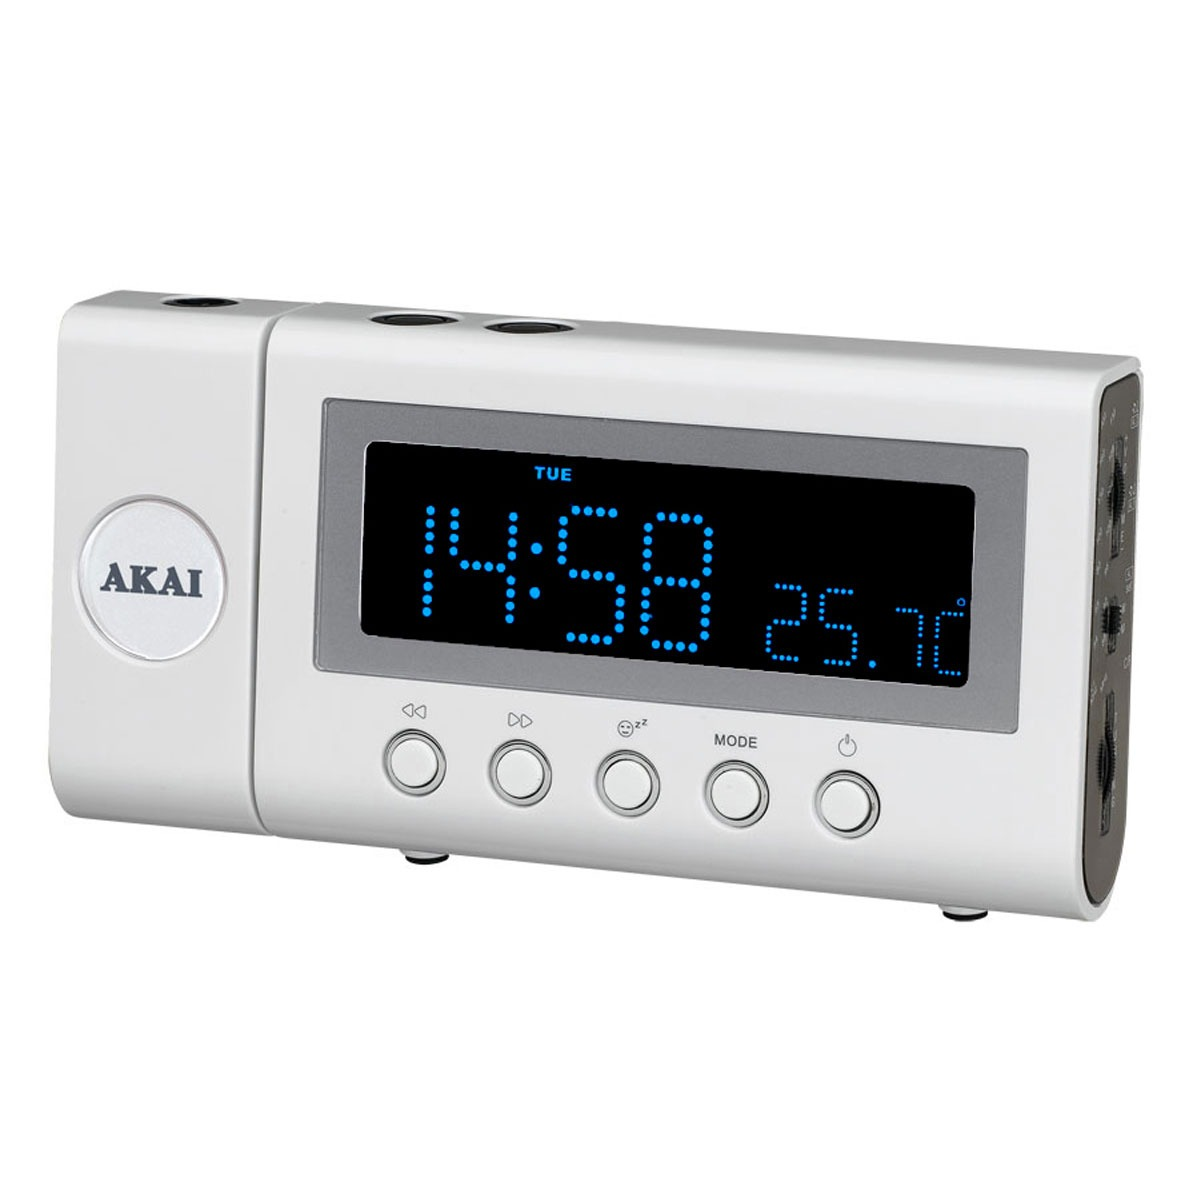 akai arp 100 blanc radio radio r veil aka sur. Black Bedroom Furniture Sets. Home Design Ideas